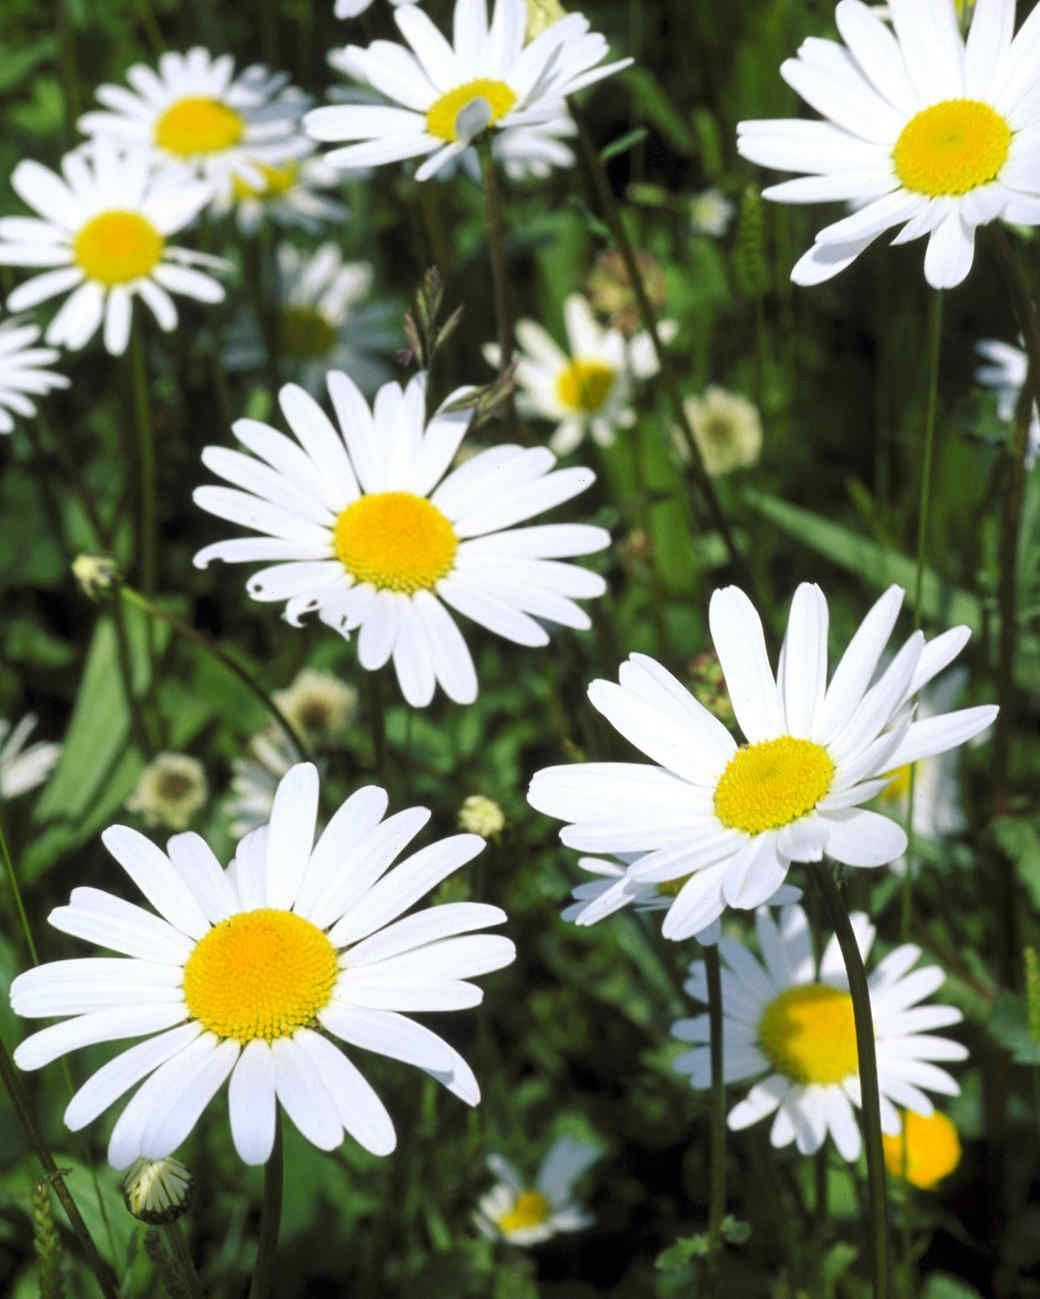 A wellknown species is the shasta daisy which has white